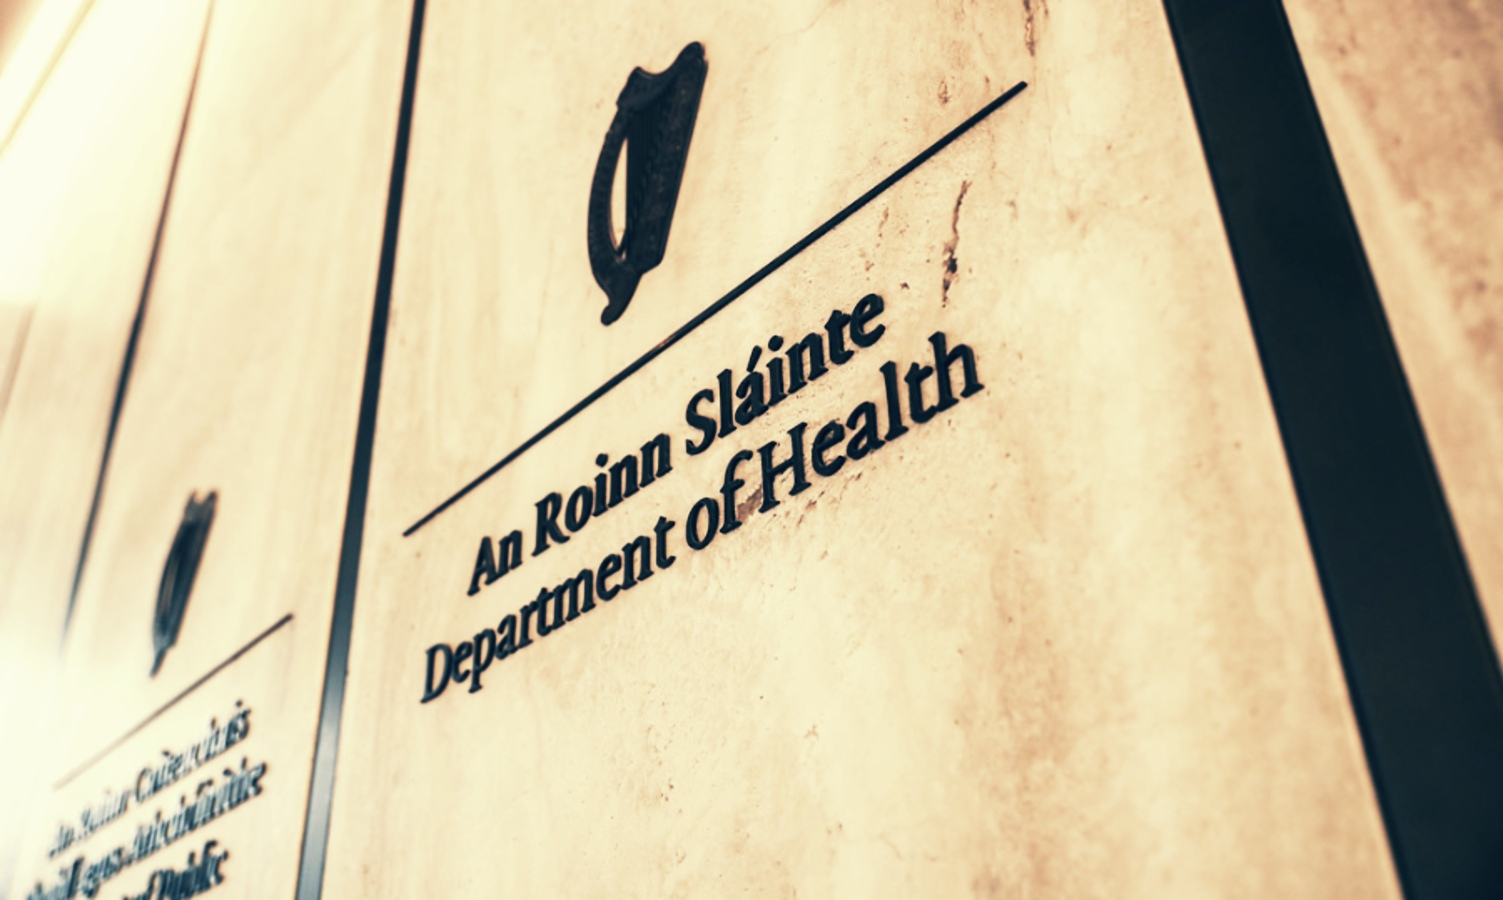 Conti ransomware also targeted Ireland's Department of Health